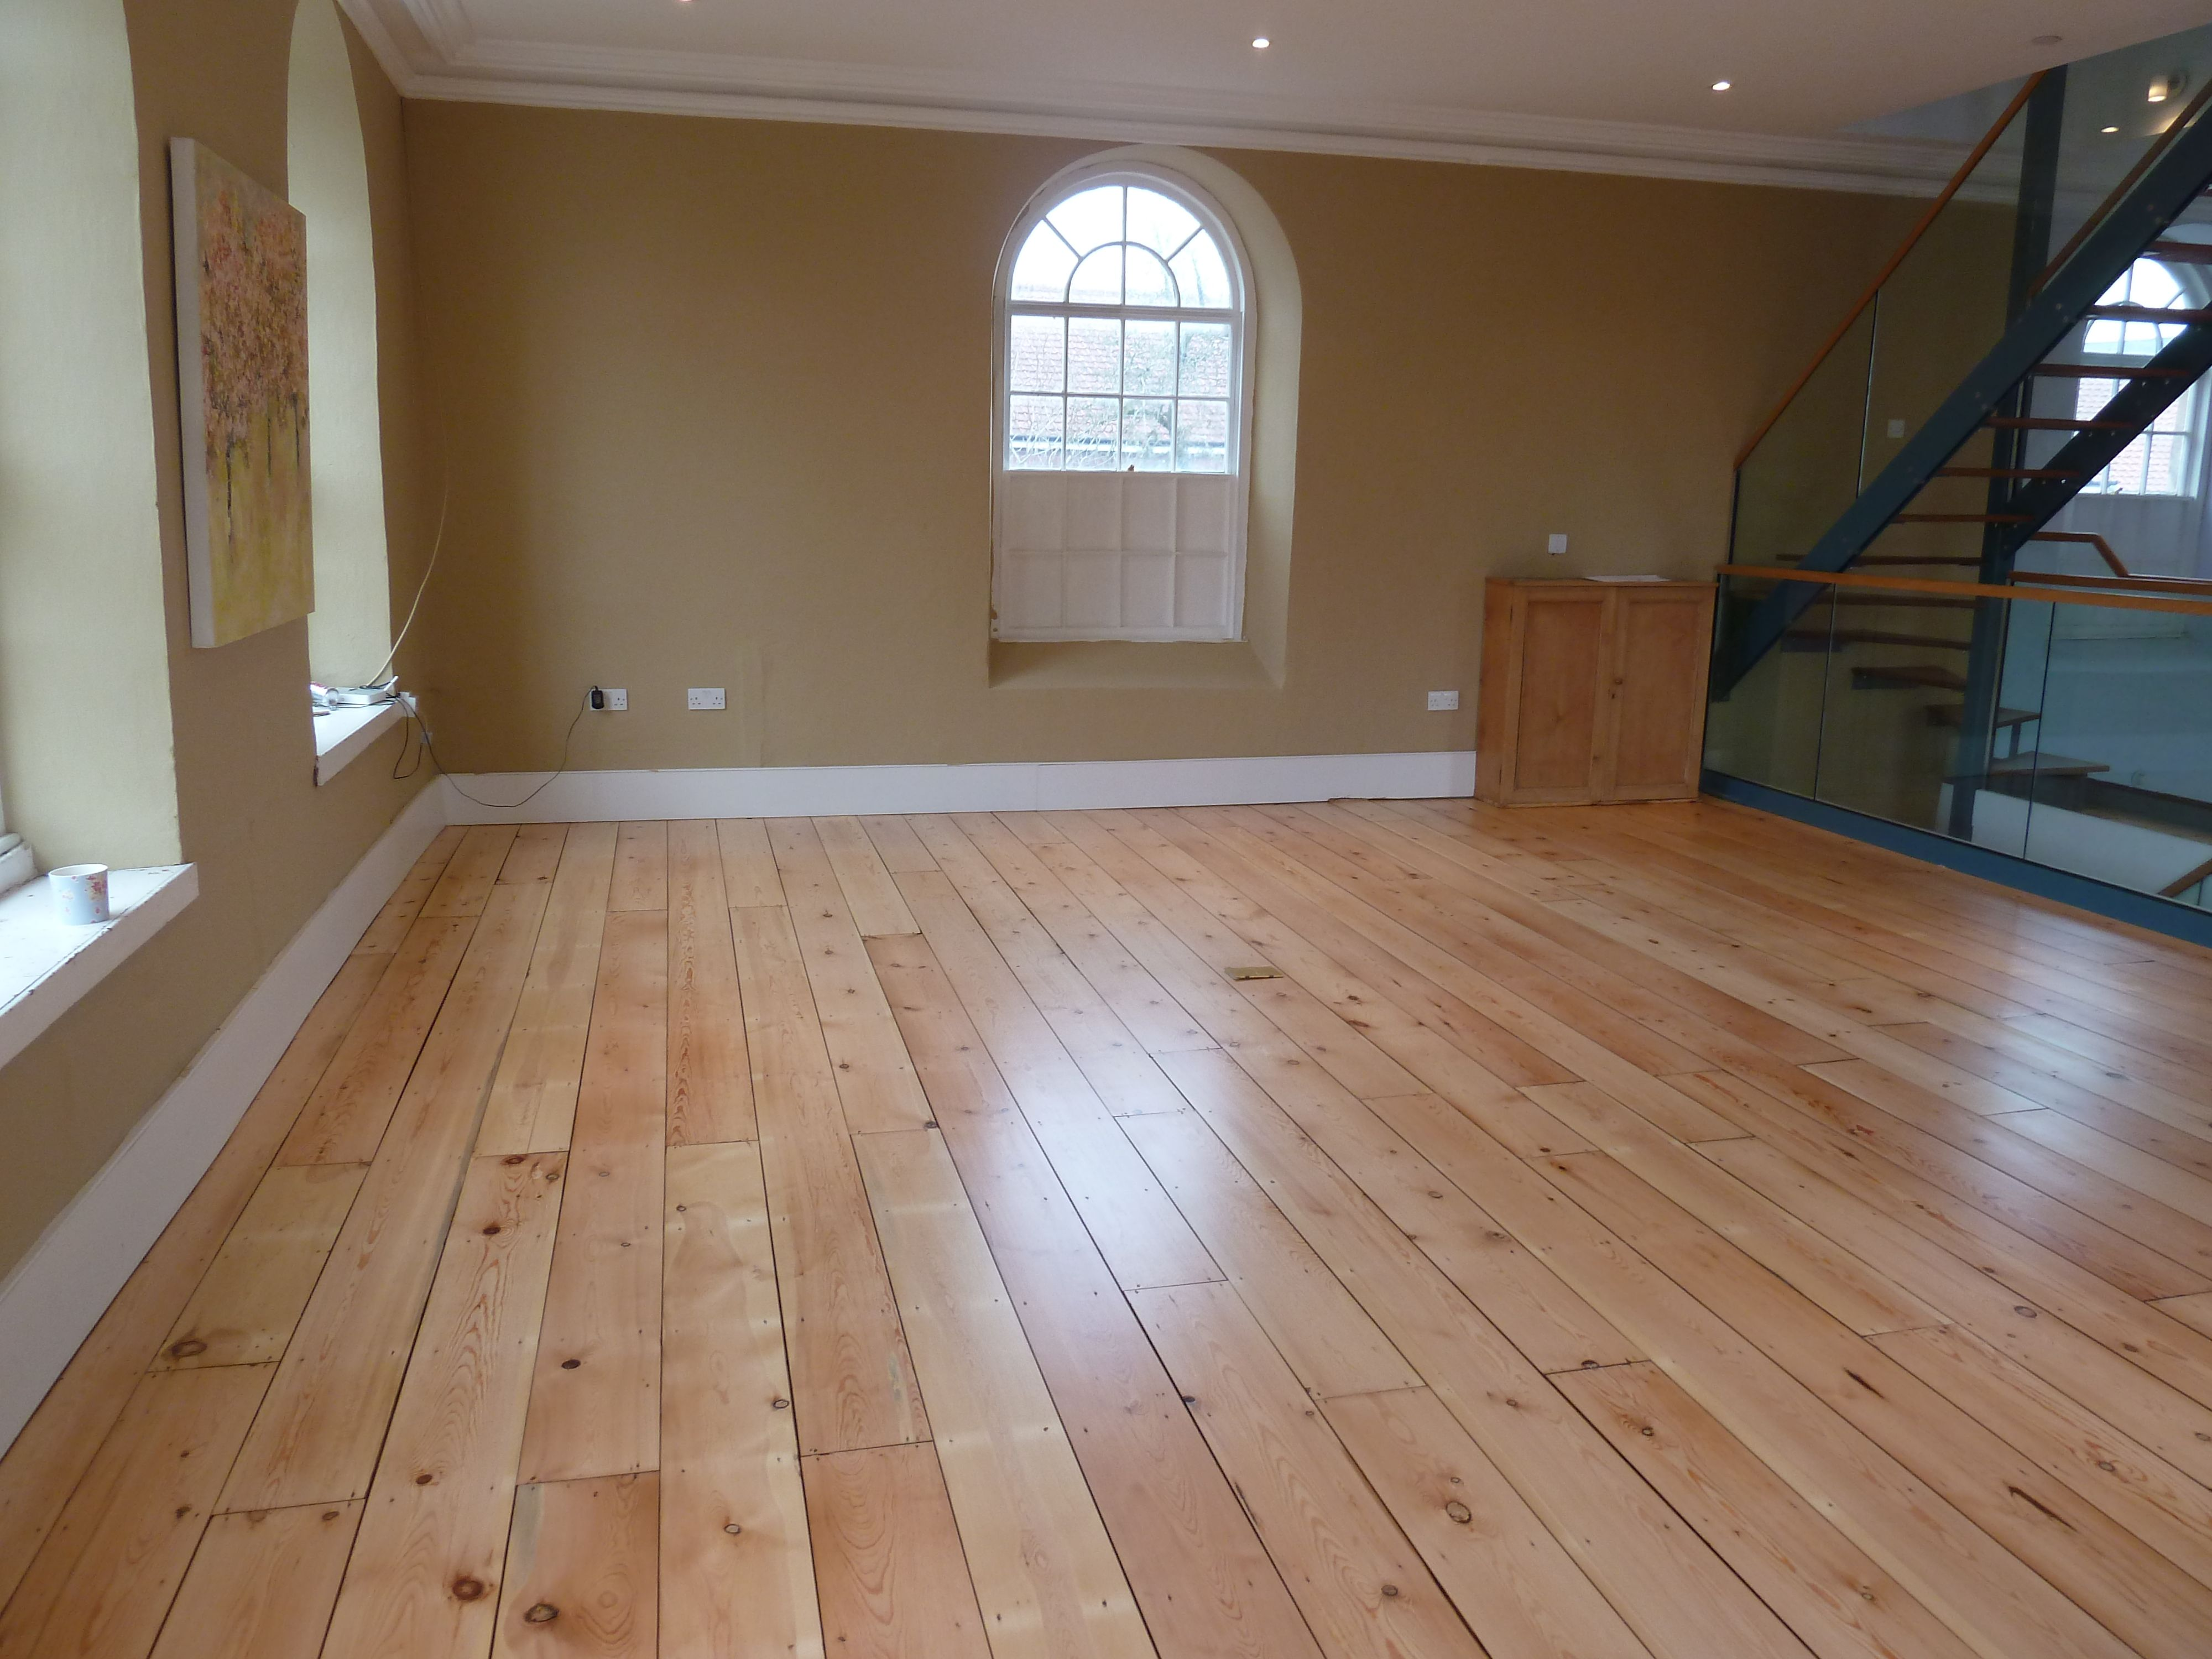 eastern white pine homes Google Search Hardwood floors